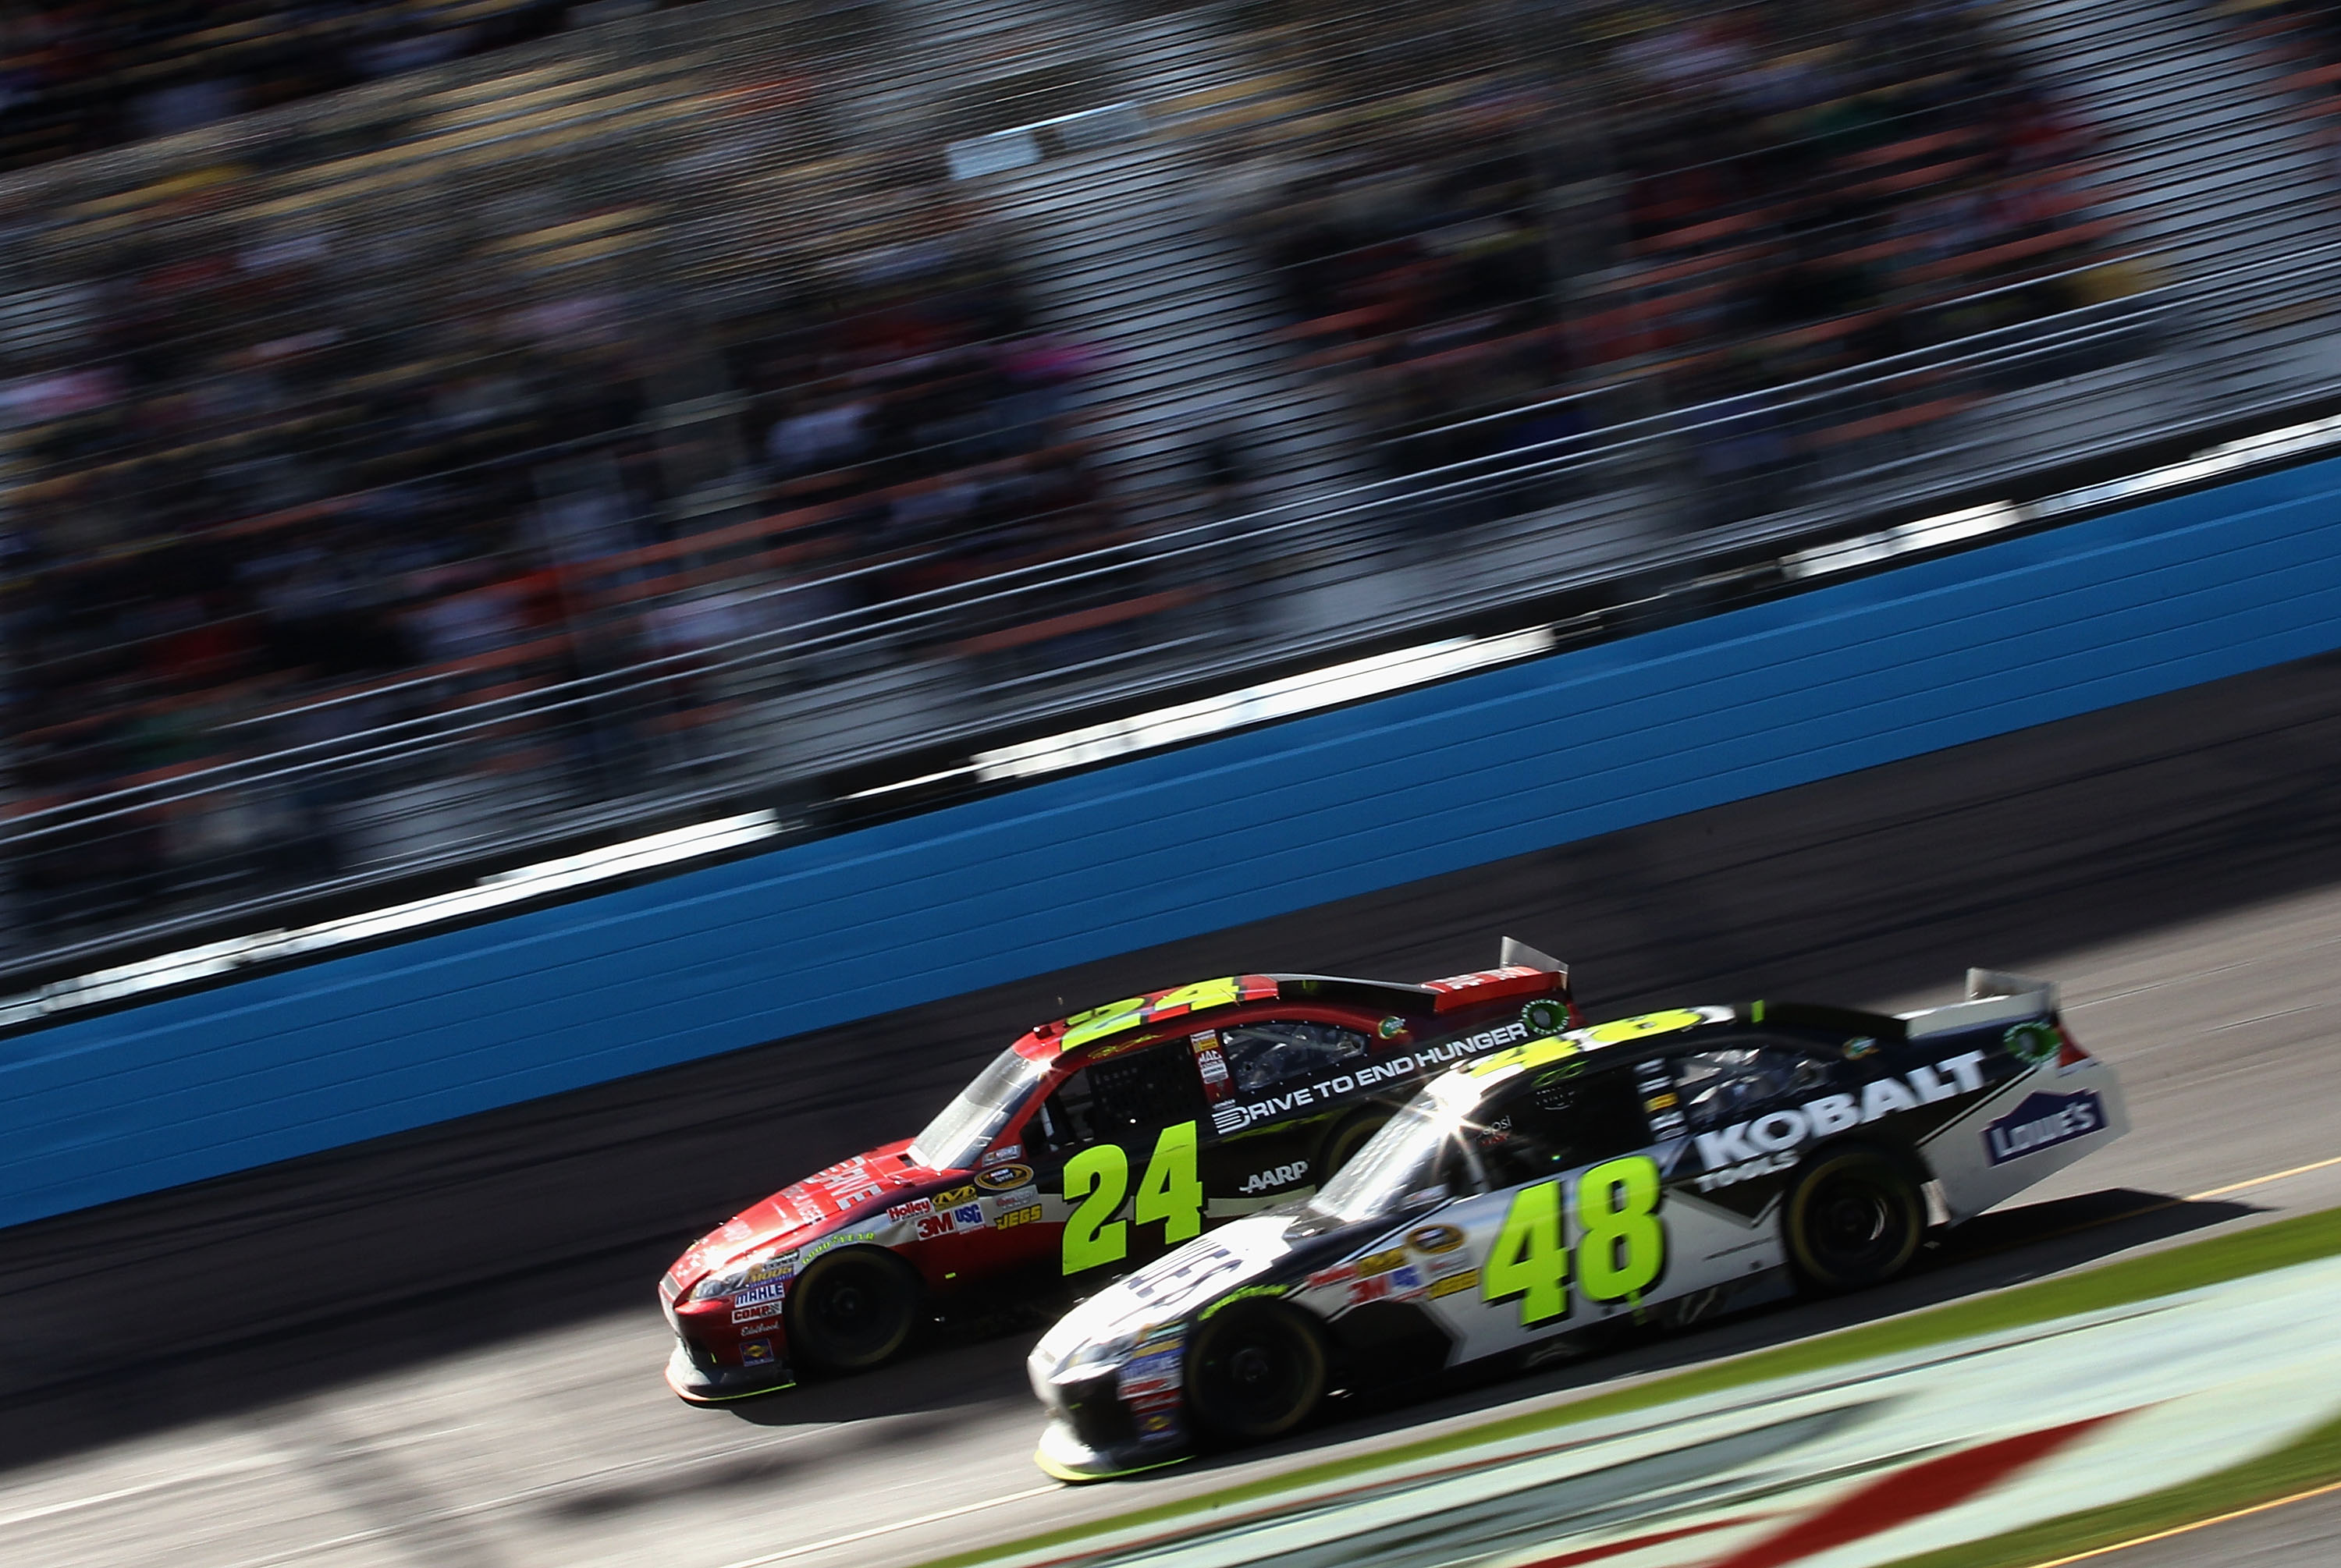 AVONDALE, AZ - FEBRUARY 27:  Jeff Gordon, driver of the #24 Drive to End Hunger Chevrolet, races Jimmie Johnson, driver of the #48 Lowe's Chevrolet, during the NASCAR Sprint Cup Series Subway Fresh Fit 500 at Phoenix International Raceway on February 27,